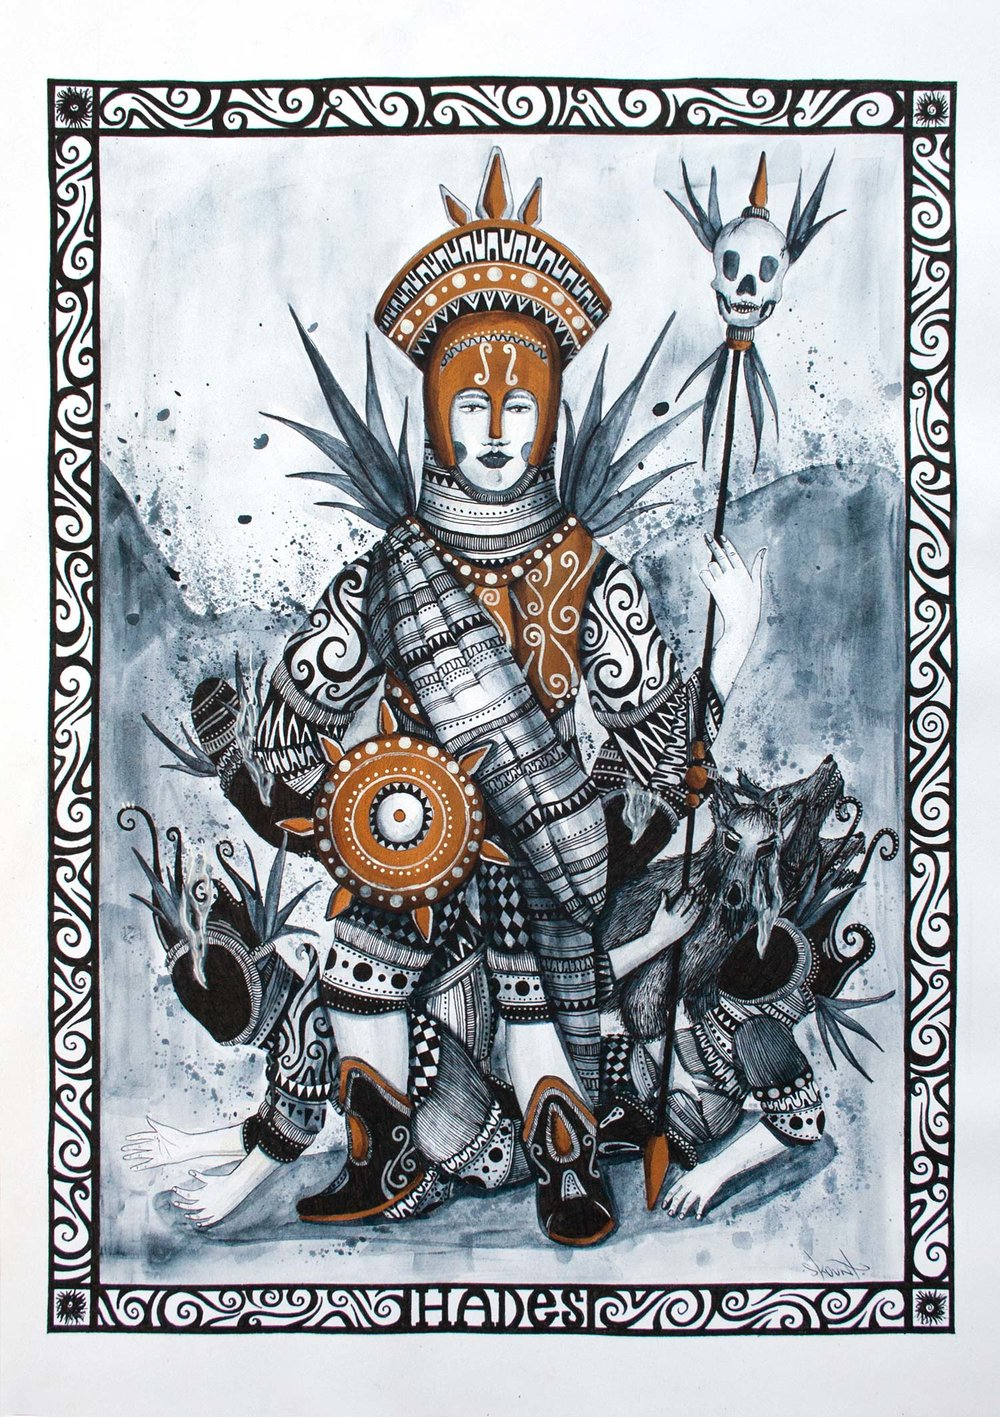 HADES , GOD OF THE UNDERWORLD.WATERCOLOR AND INK ON 300GR WATERCOLOR PAPER 42 X 30 CM. 2013WATERCOLOR AND INK ON 300GR WATERCOLOR PAPER 42 X 30 CM. 2013